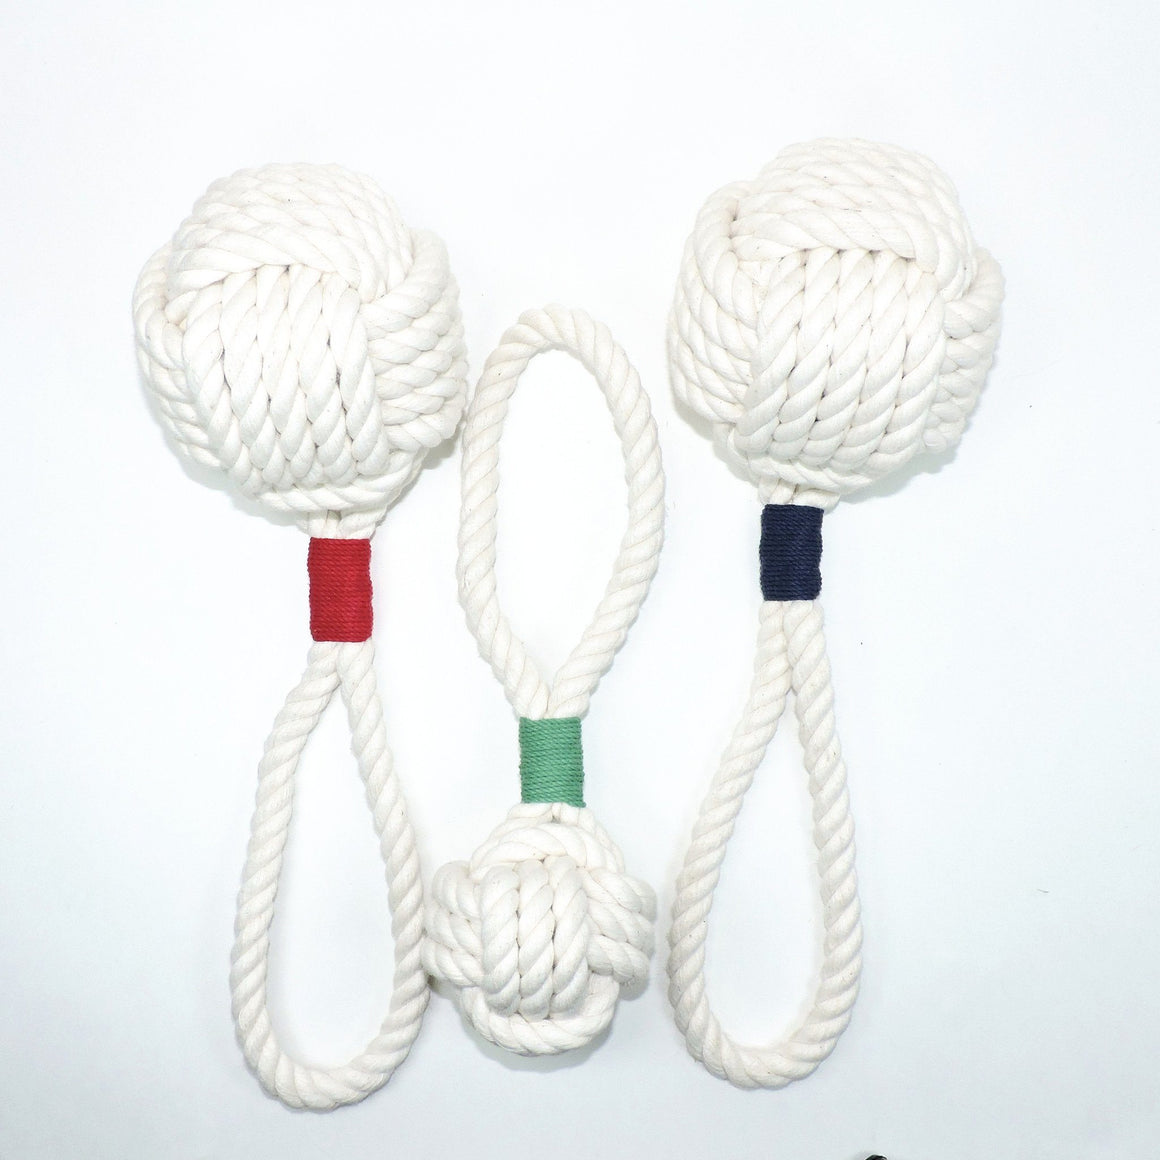 Monkey Fist Rope Dog Toy - Mystic Knotwork  - 3